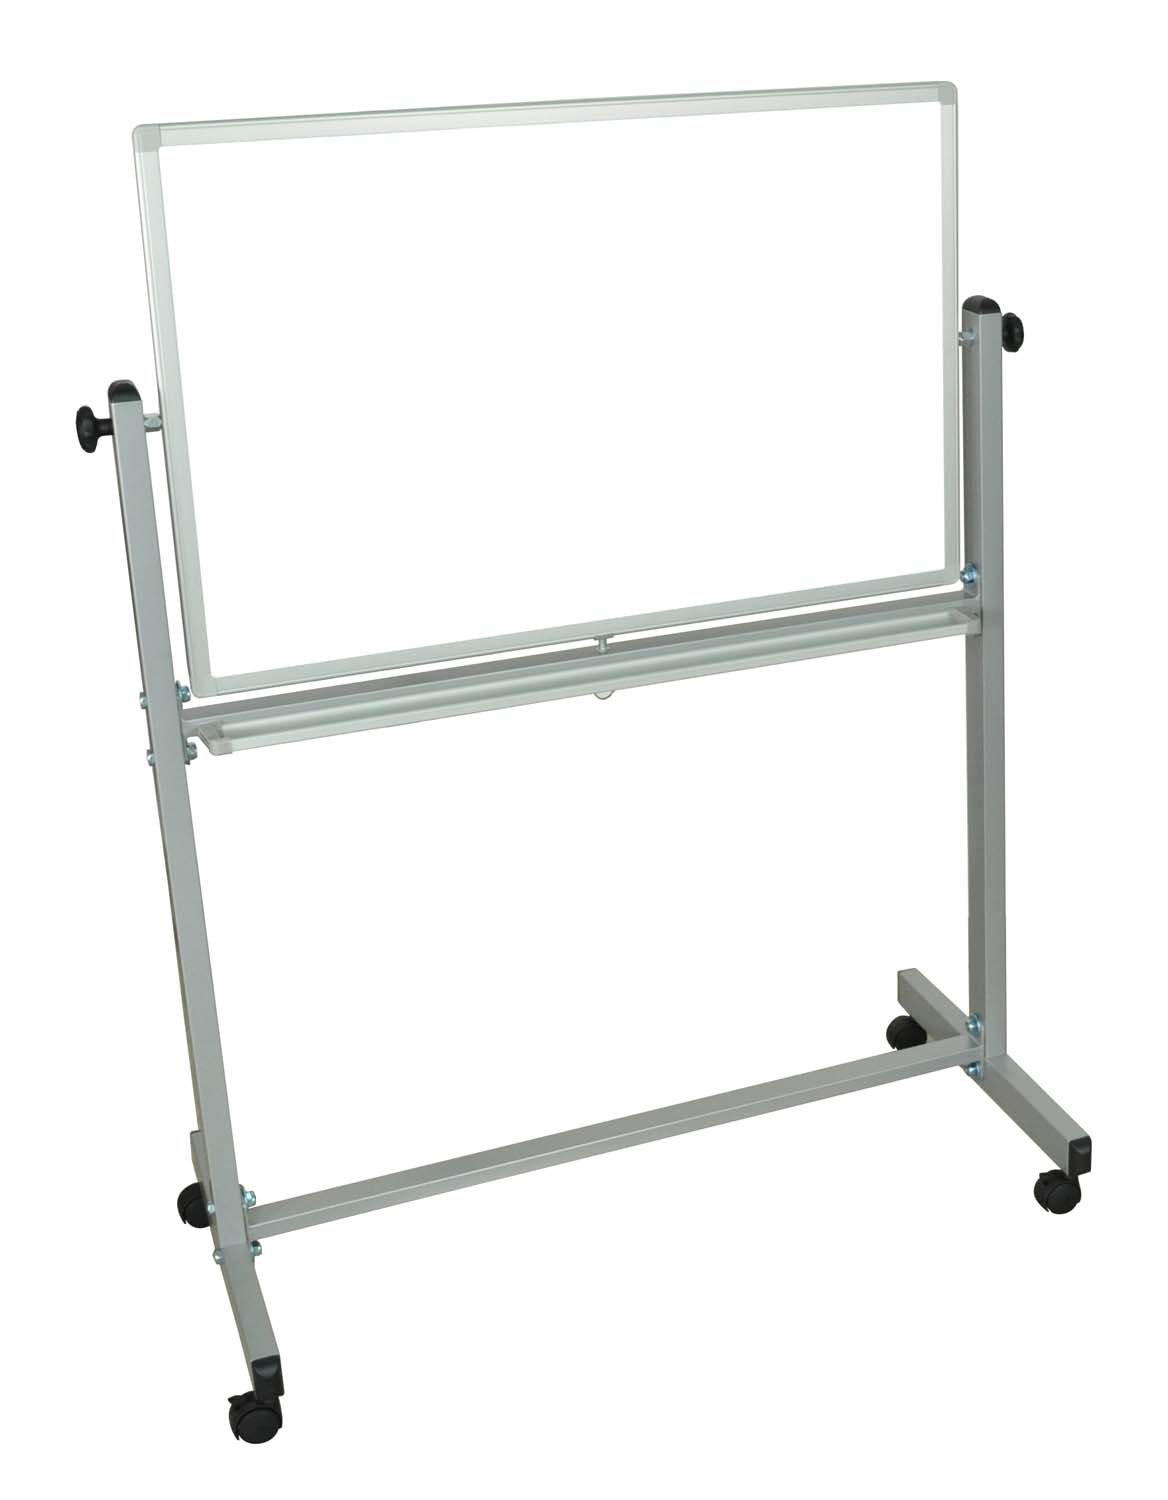 Offex Mobile Double Sided 36 x 24 Inches Reversible Adjustable Magnetic Whiteboard Easel with Chrome Frame, 4 Casters (OF-MB3624WW)